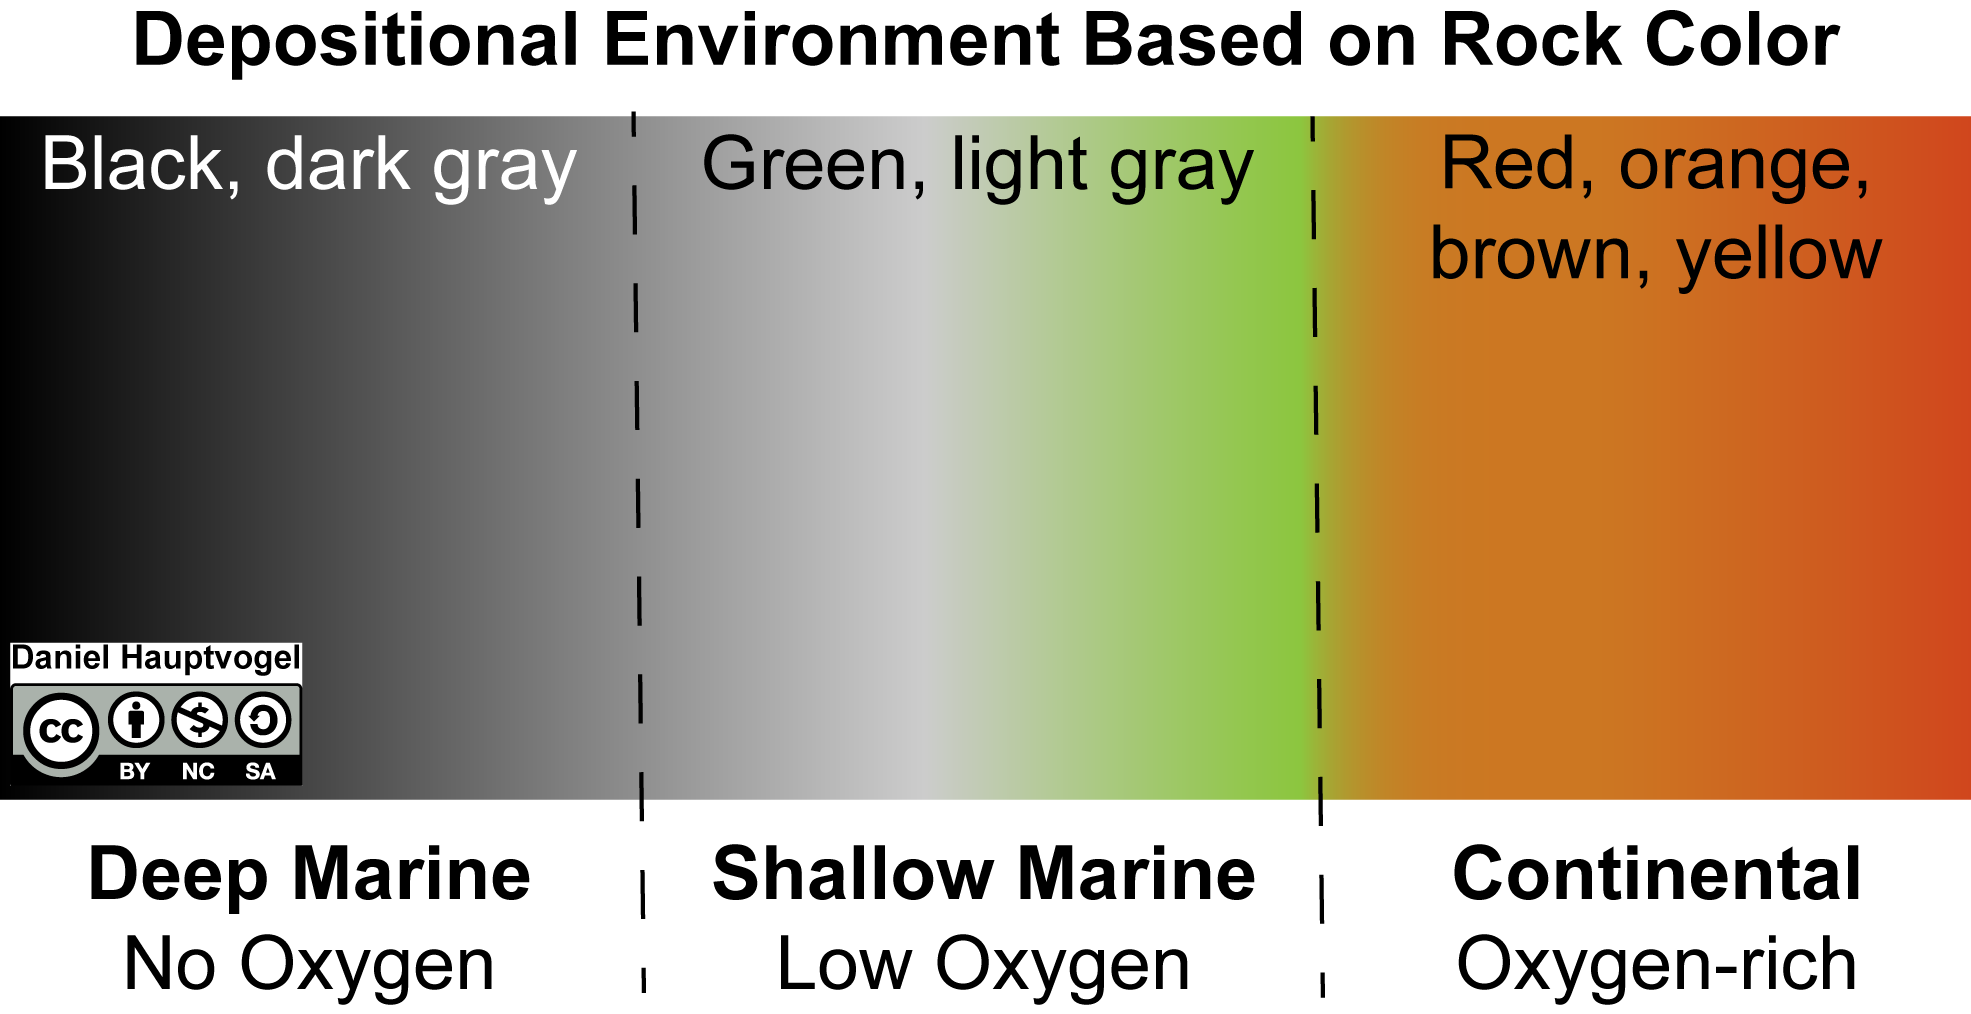 Depositional environment of sedimentary rocks based on rock color from black to gray to green to red-brown.